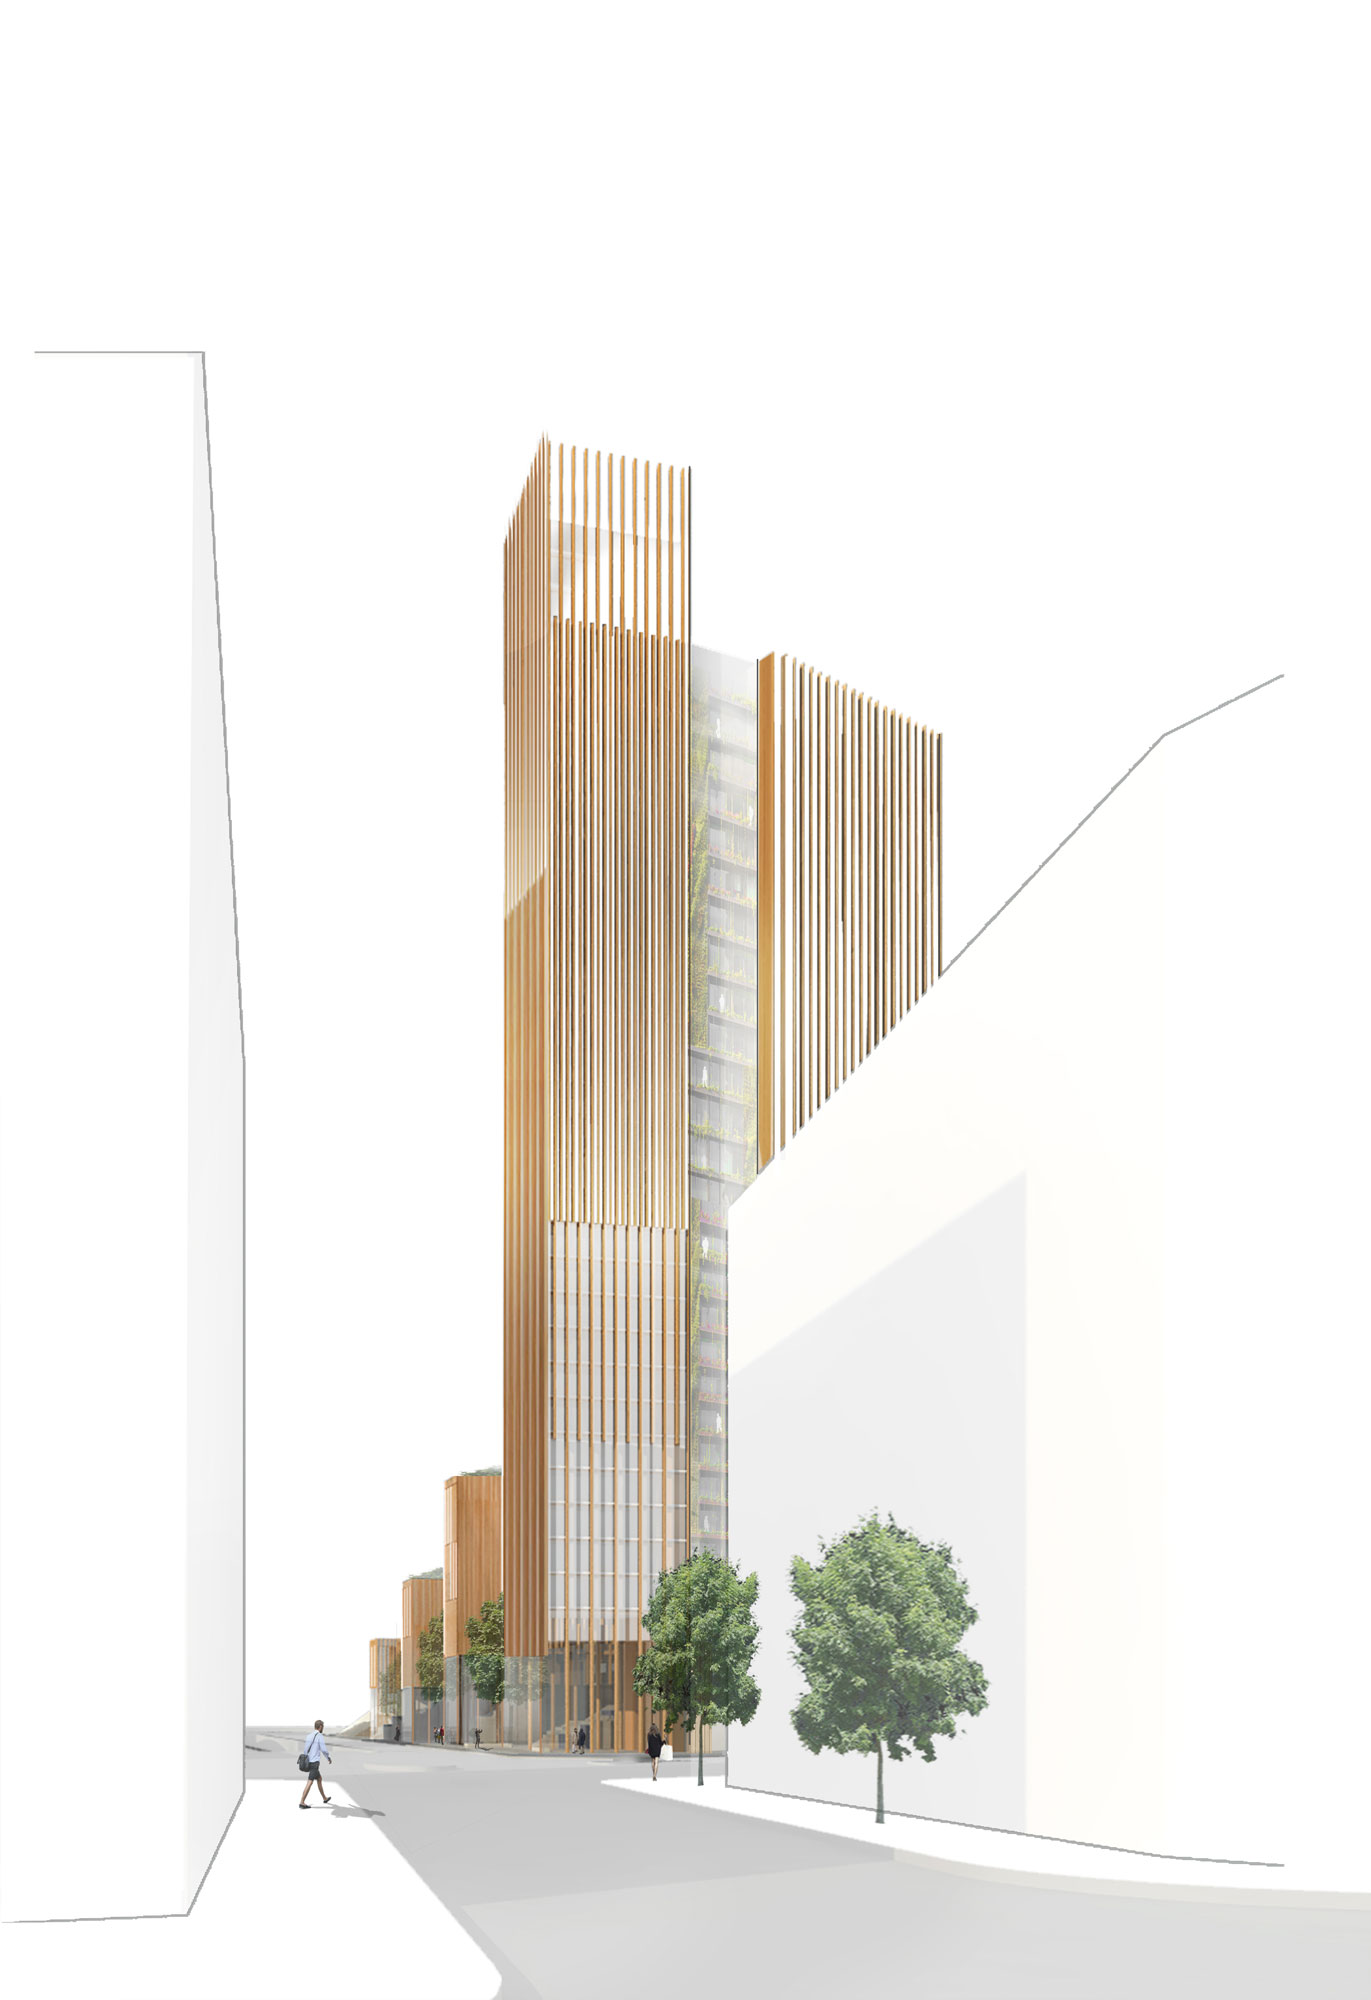 A proposal to transform the parisian skyline and define a Wood architecture definition